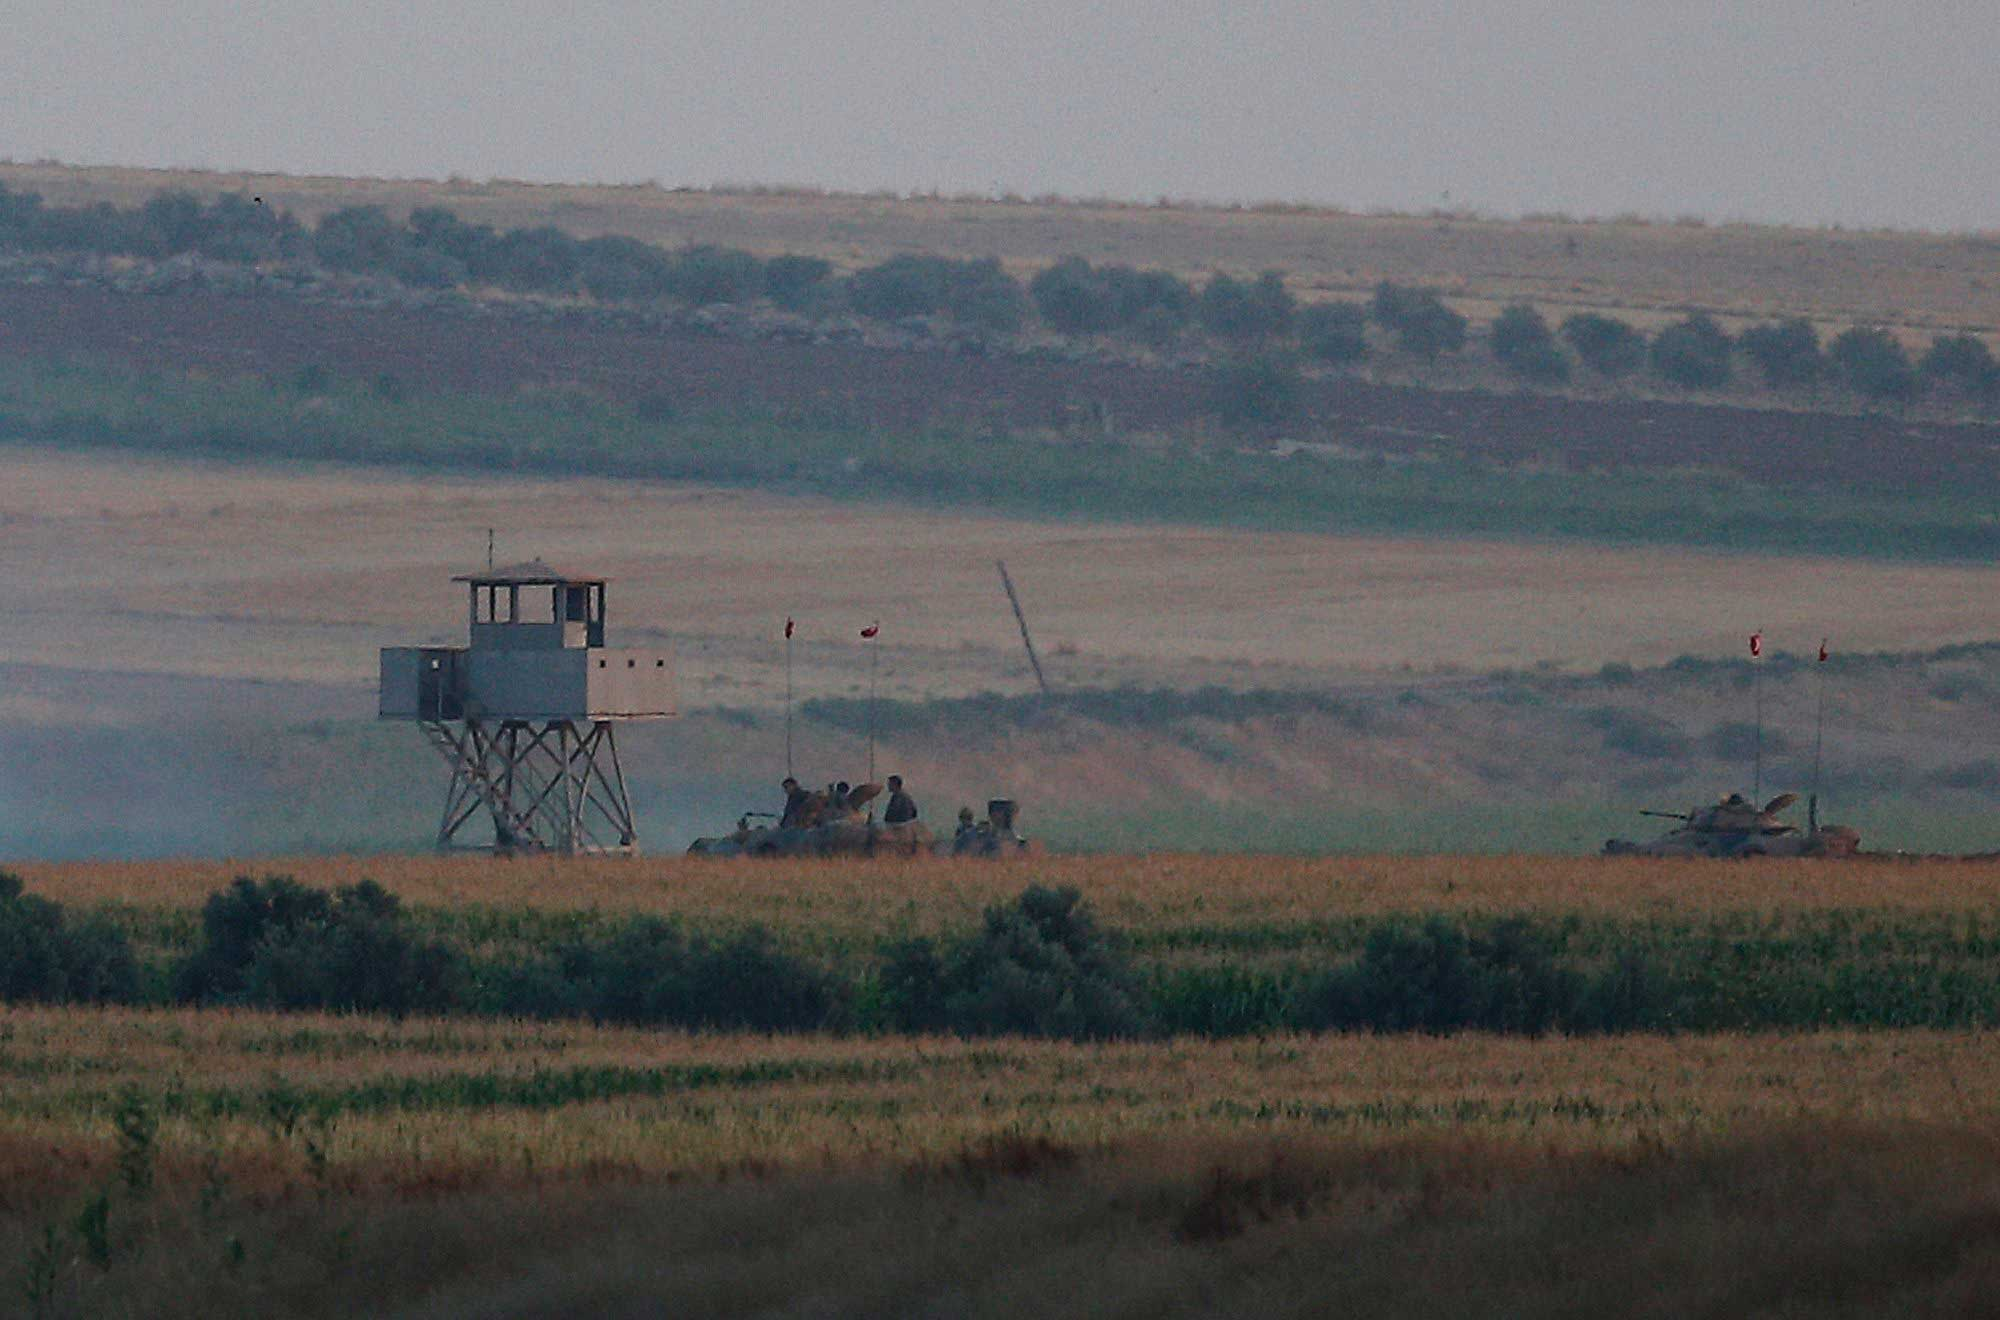 Turkish army tanks hold positions next to an outpost, near the border with Syria, on July 23, 2015.